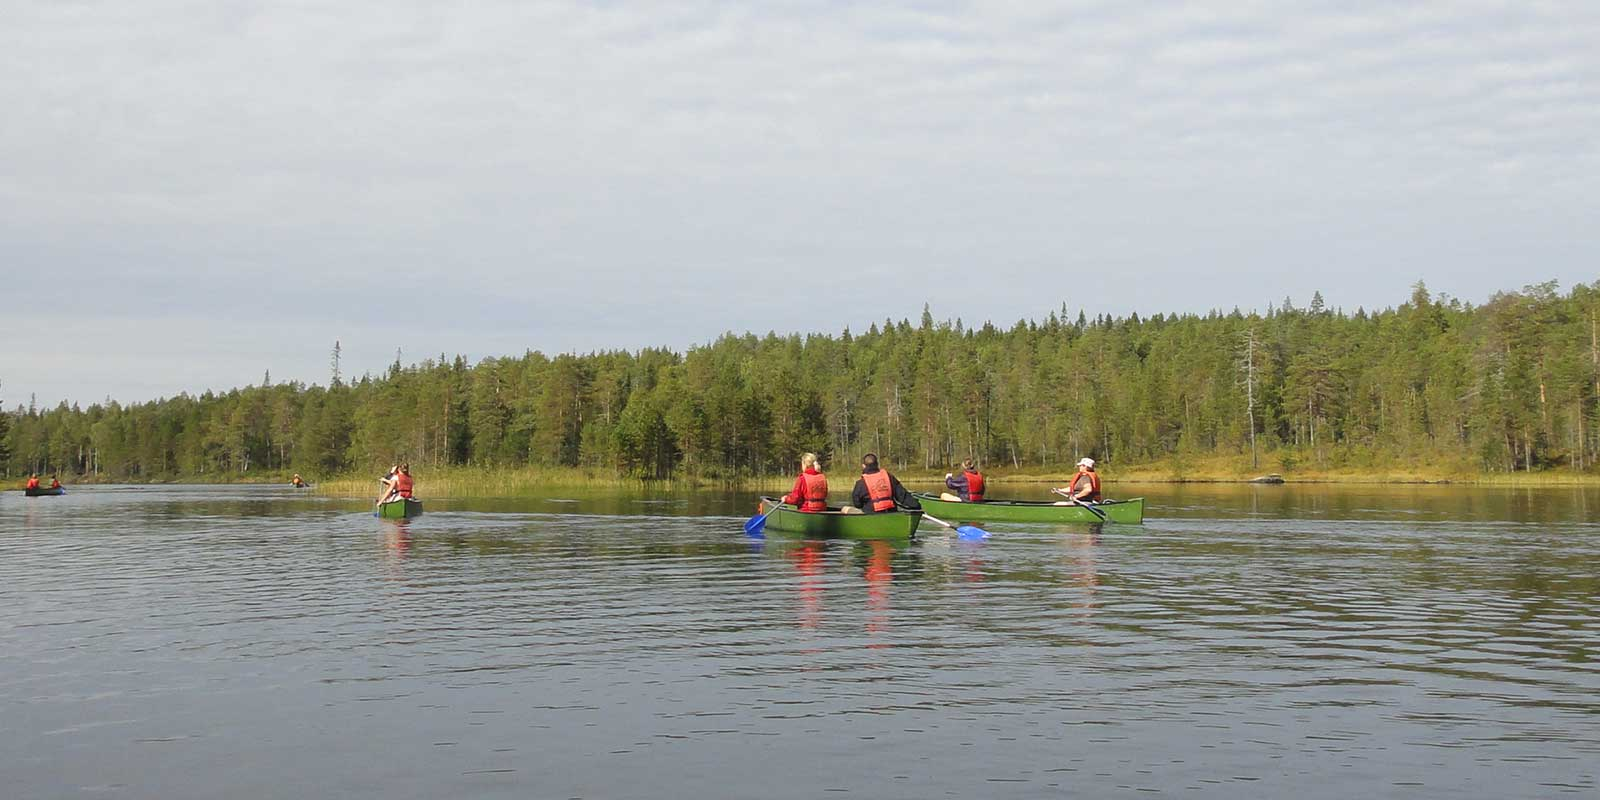 Group canoeing on river in Finland